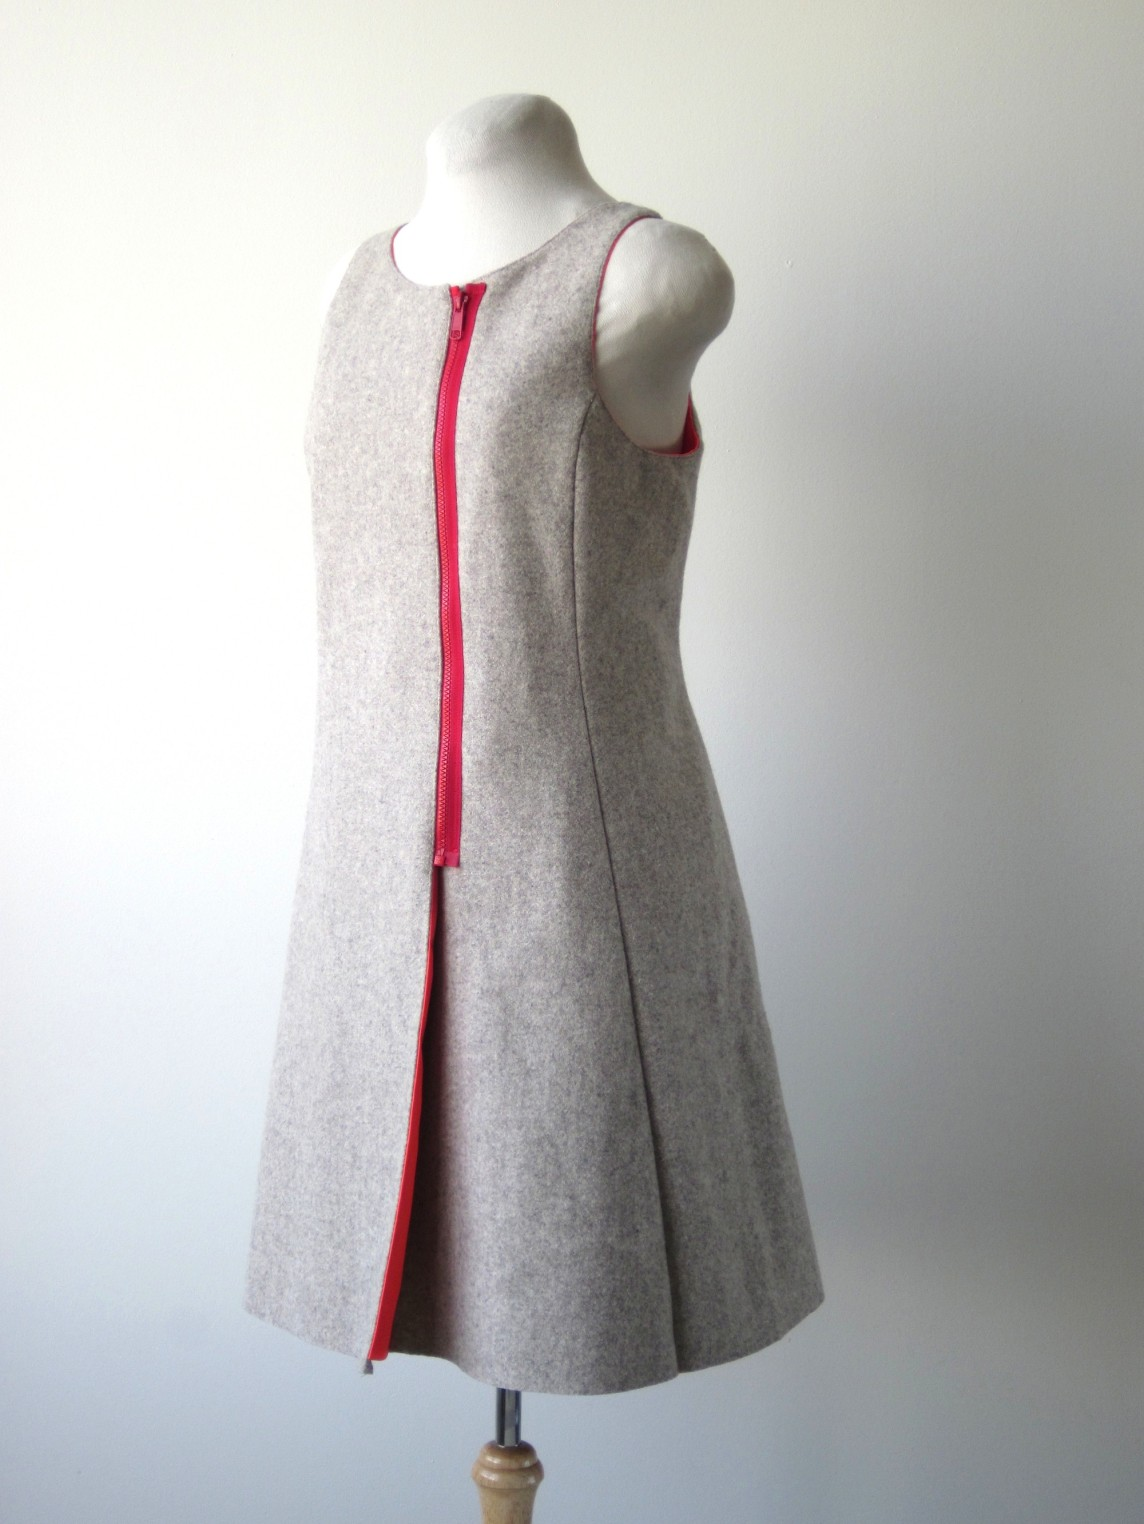 LKitkat Dress, 2013  (exterior view)